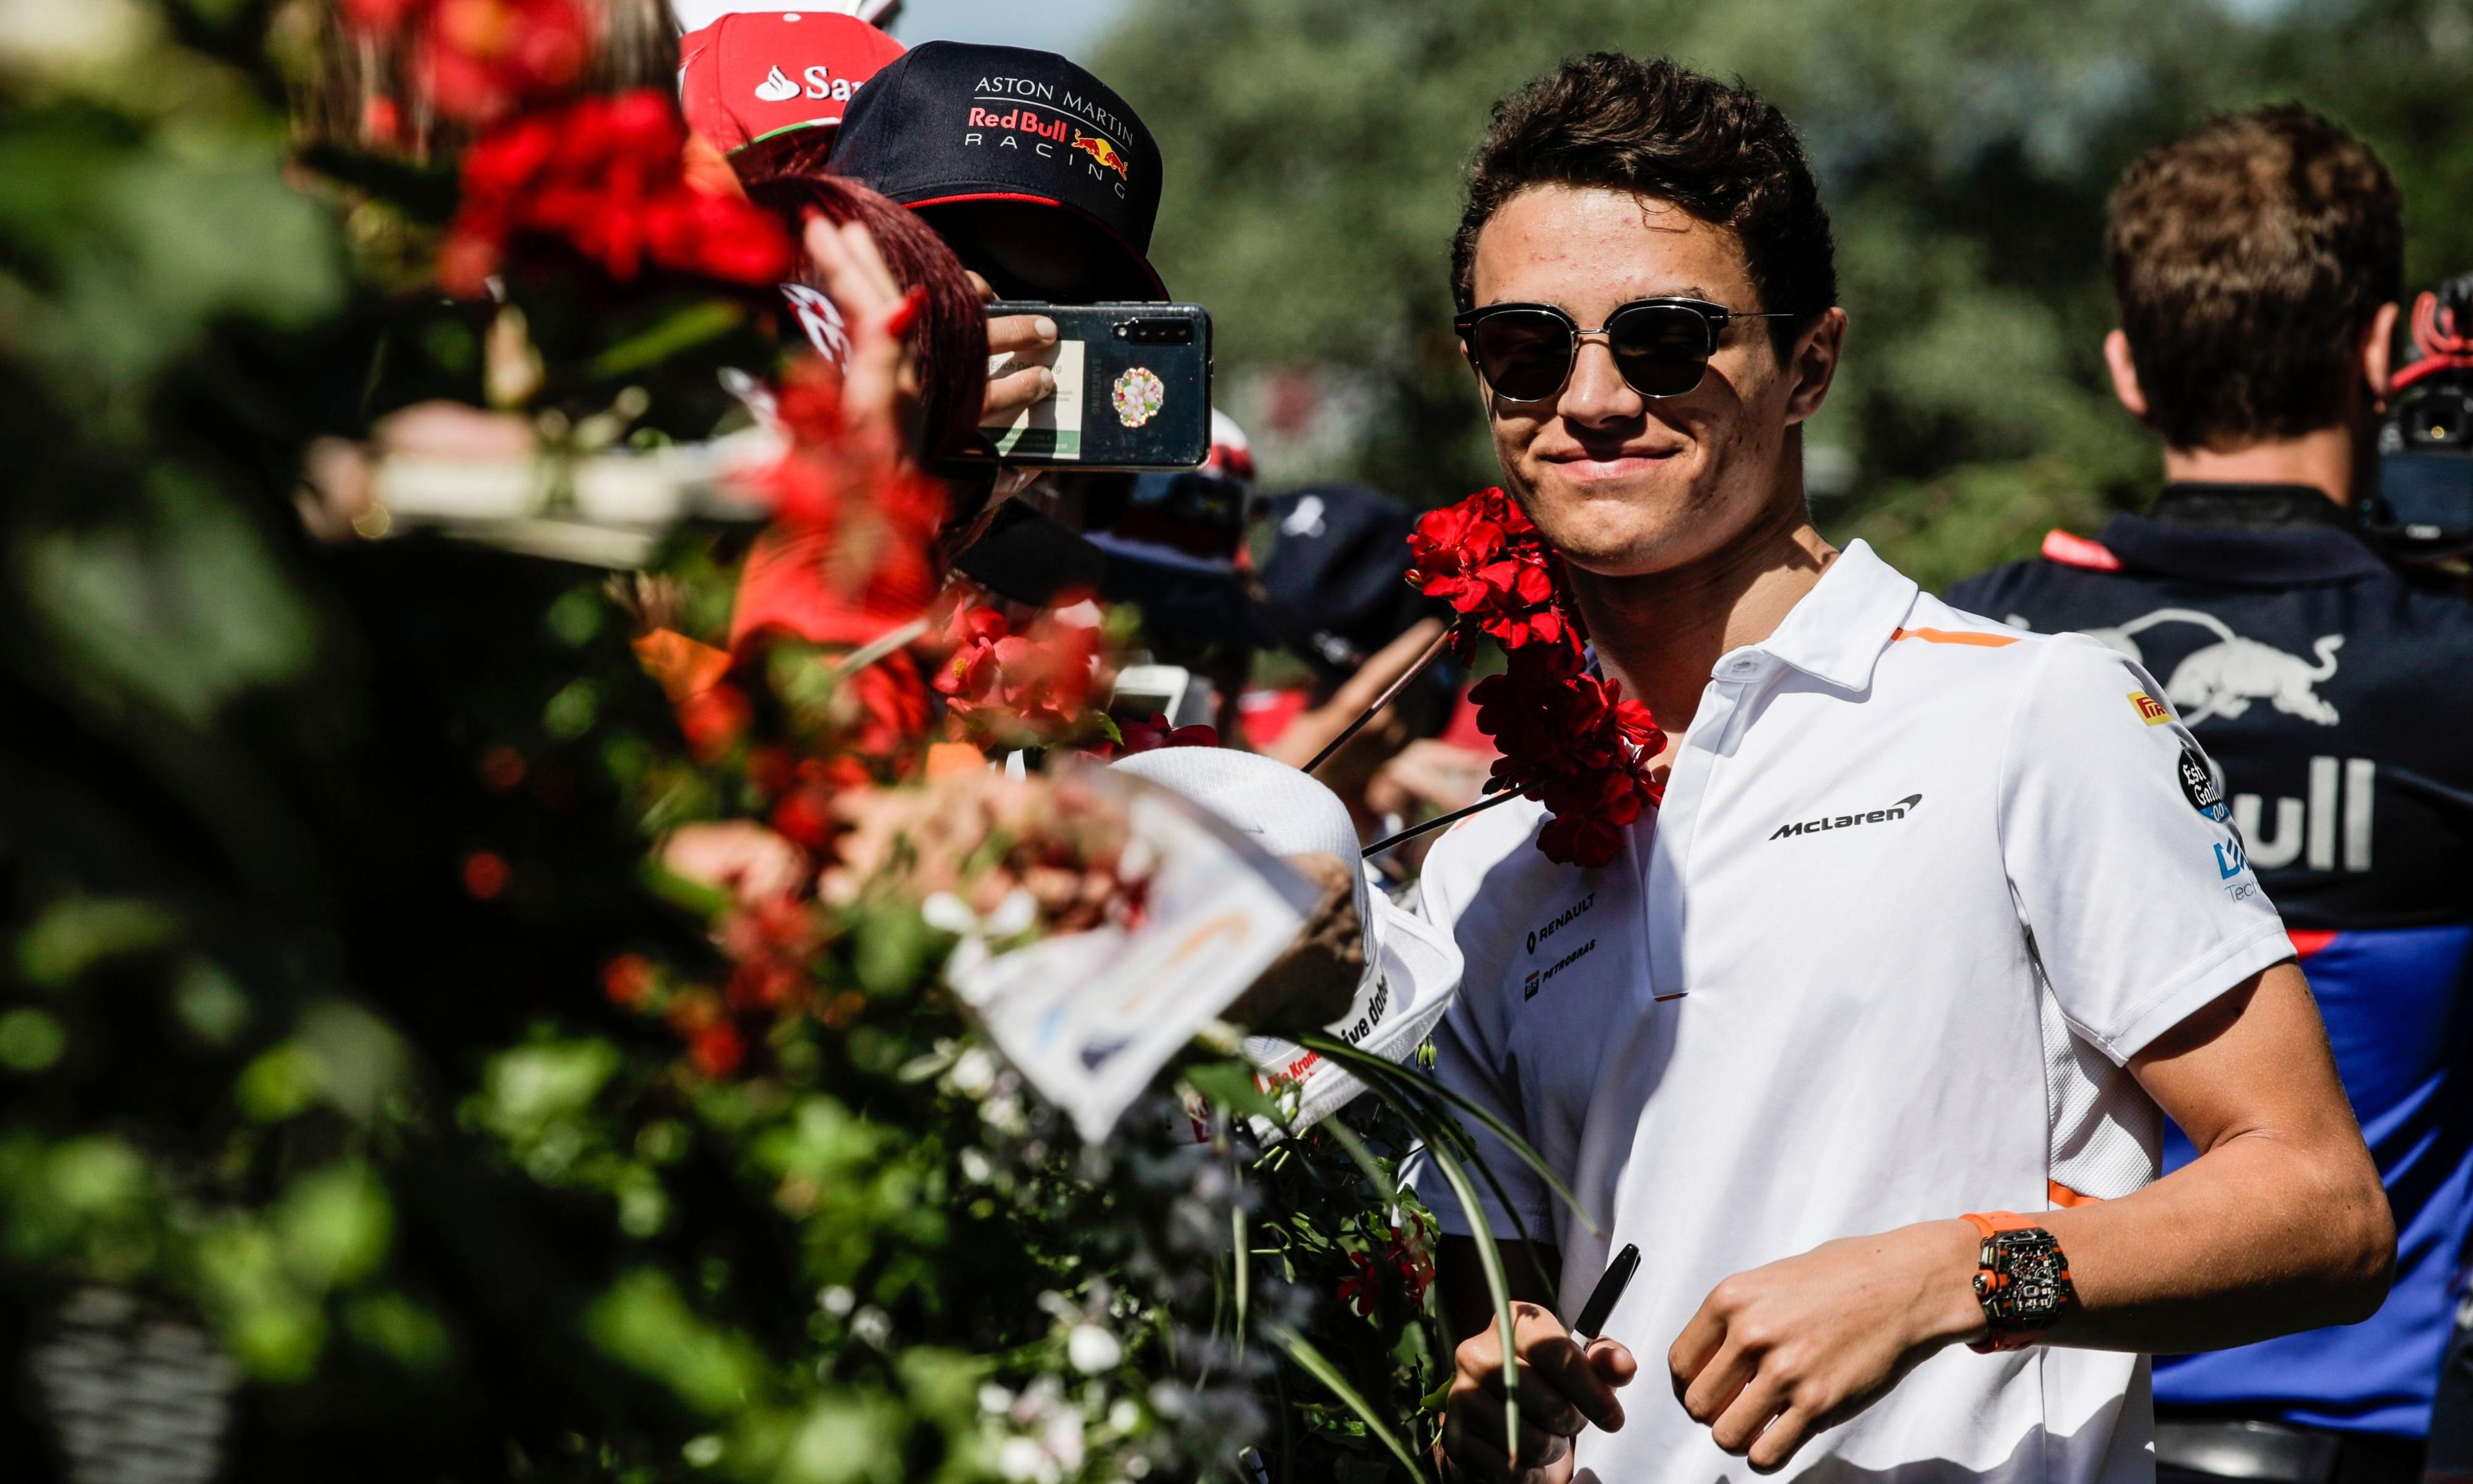 Lando Norris signs new McLaren contract after superb start to F1 career